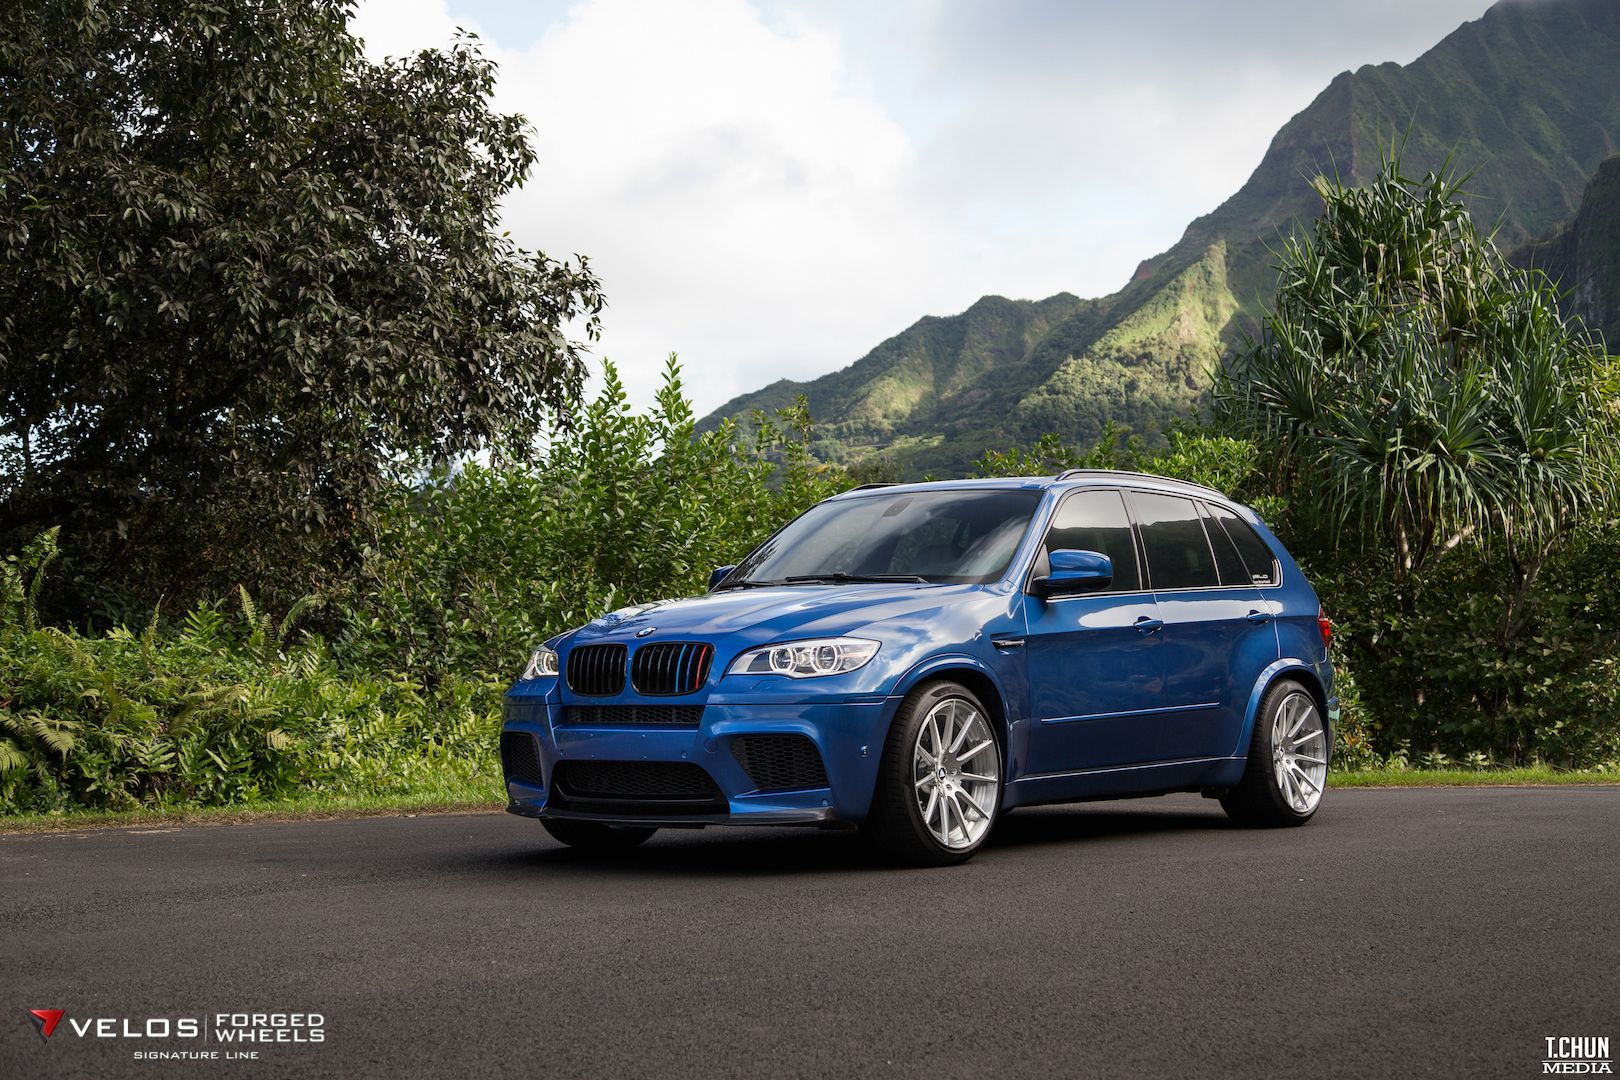 bmw e70 x5 m monster provocative strong muscle. Black Bedroom Furniture Sets. Home Design Ideas